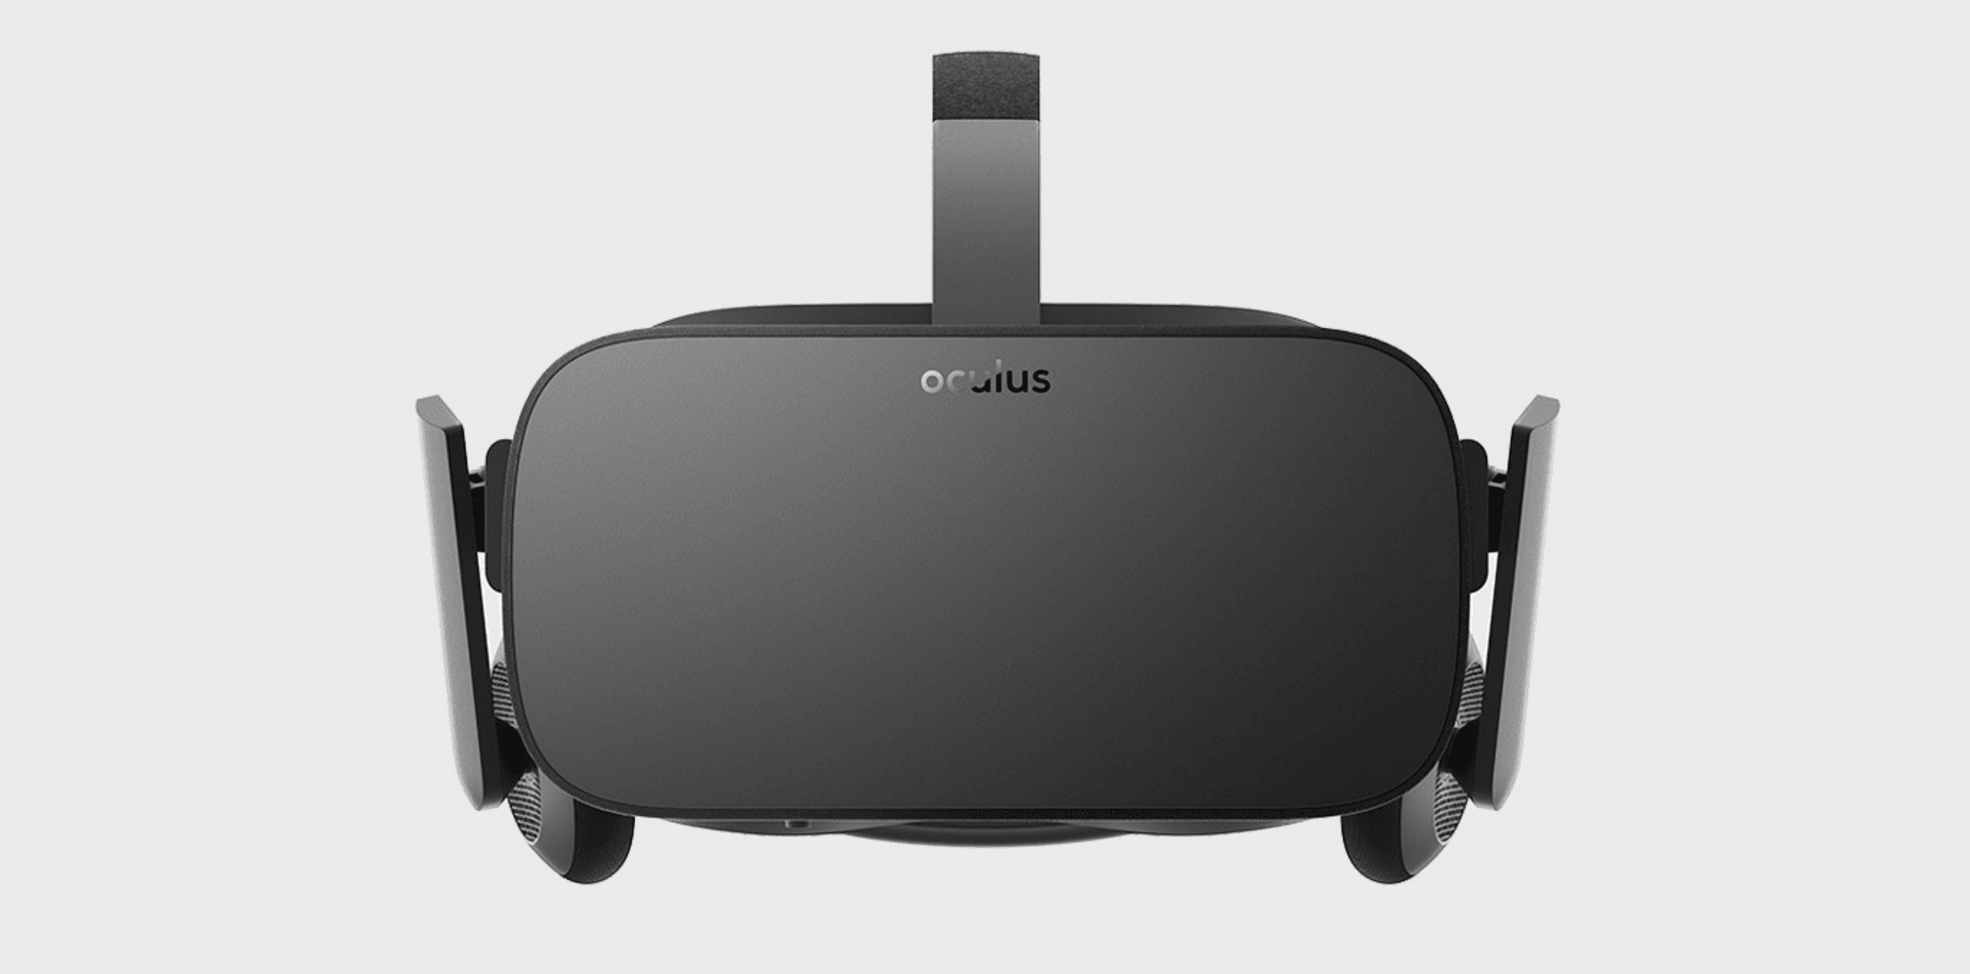 It's here, but at what price? Pre-order your Oculus Rift on January 6